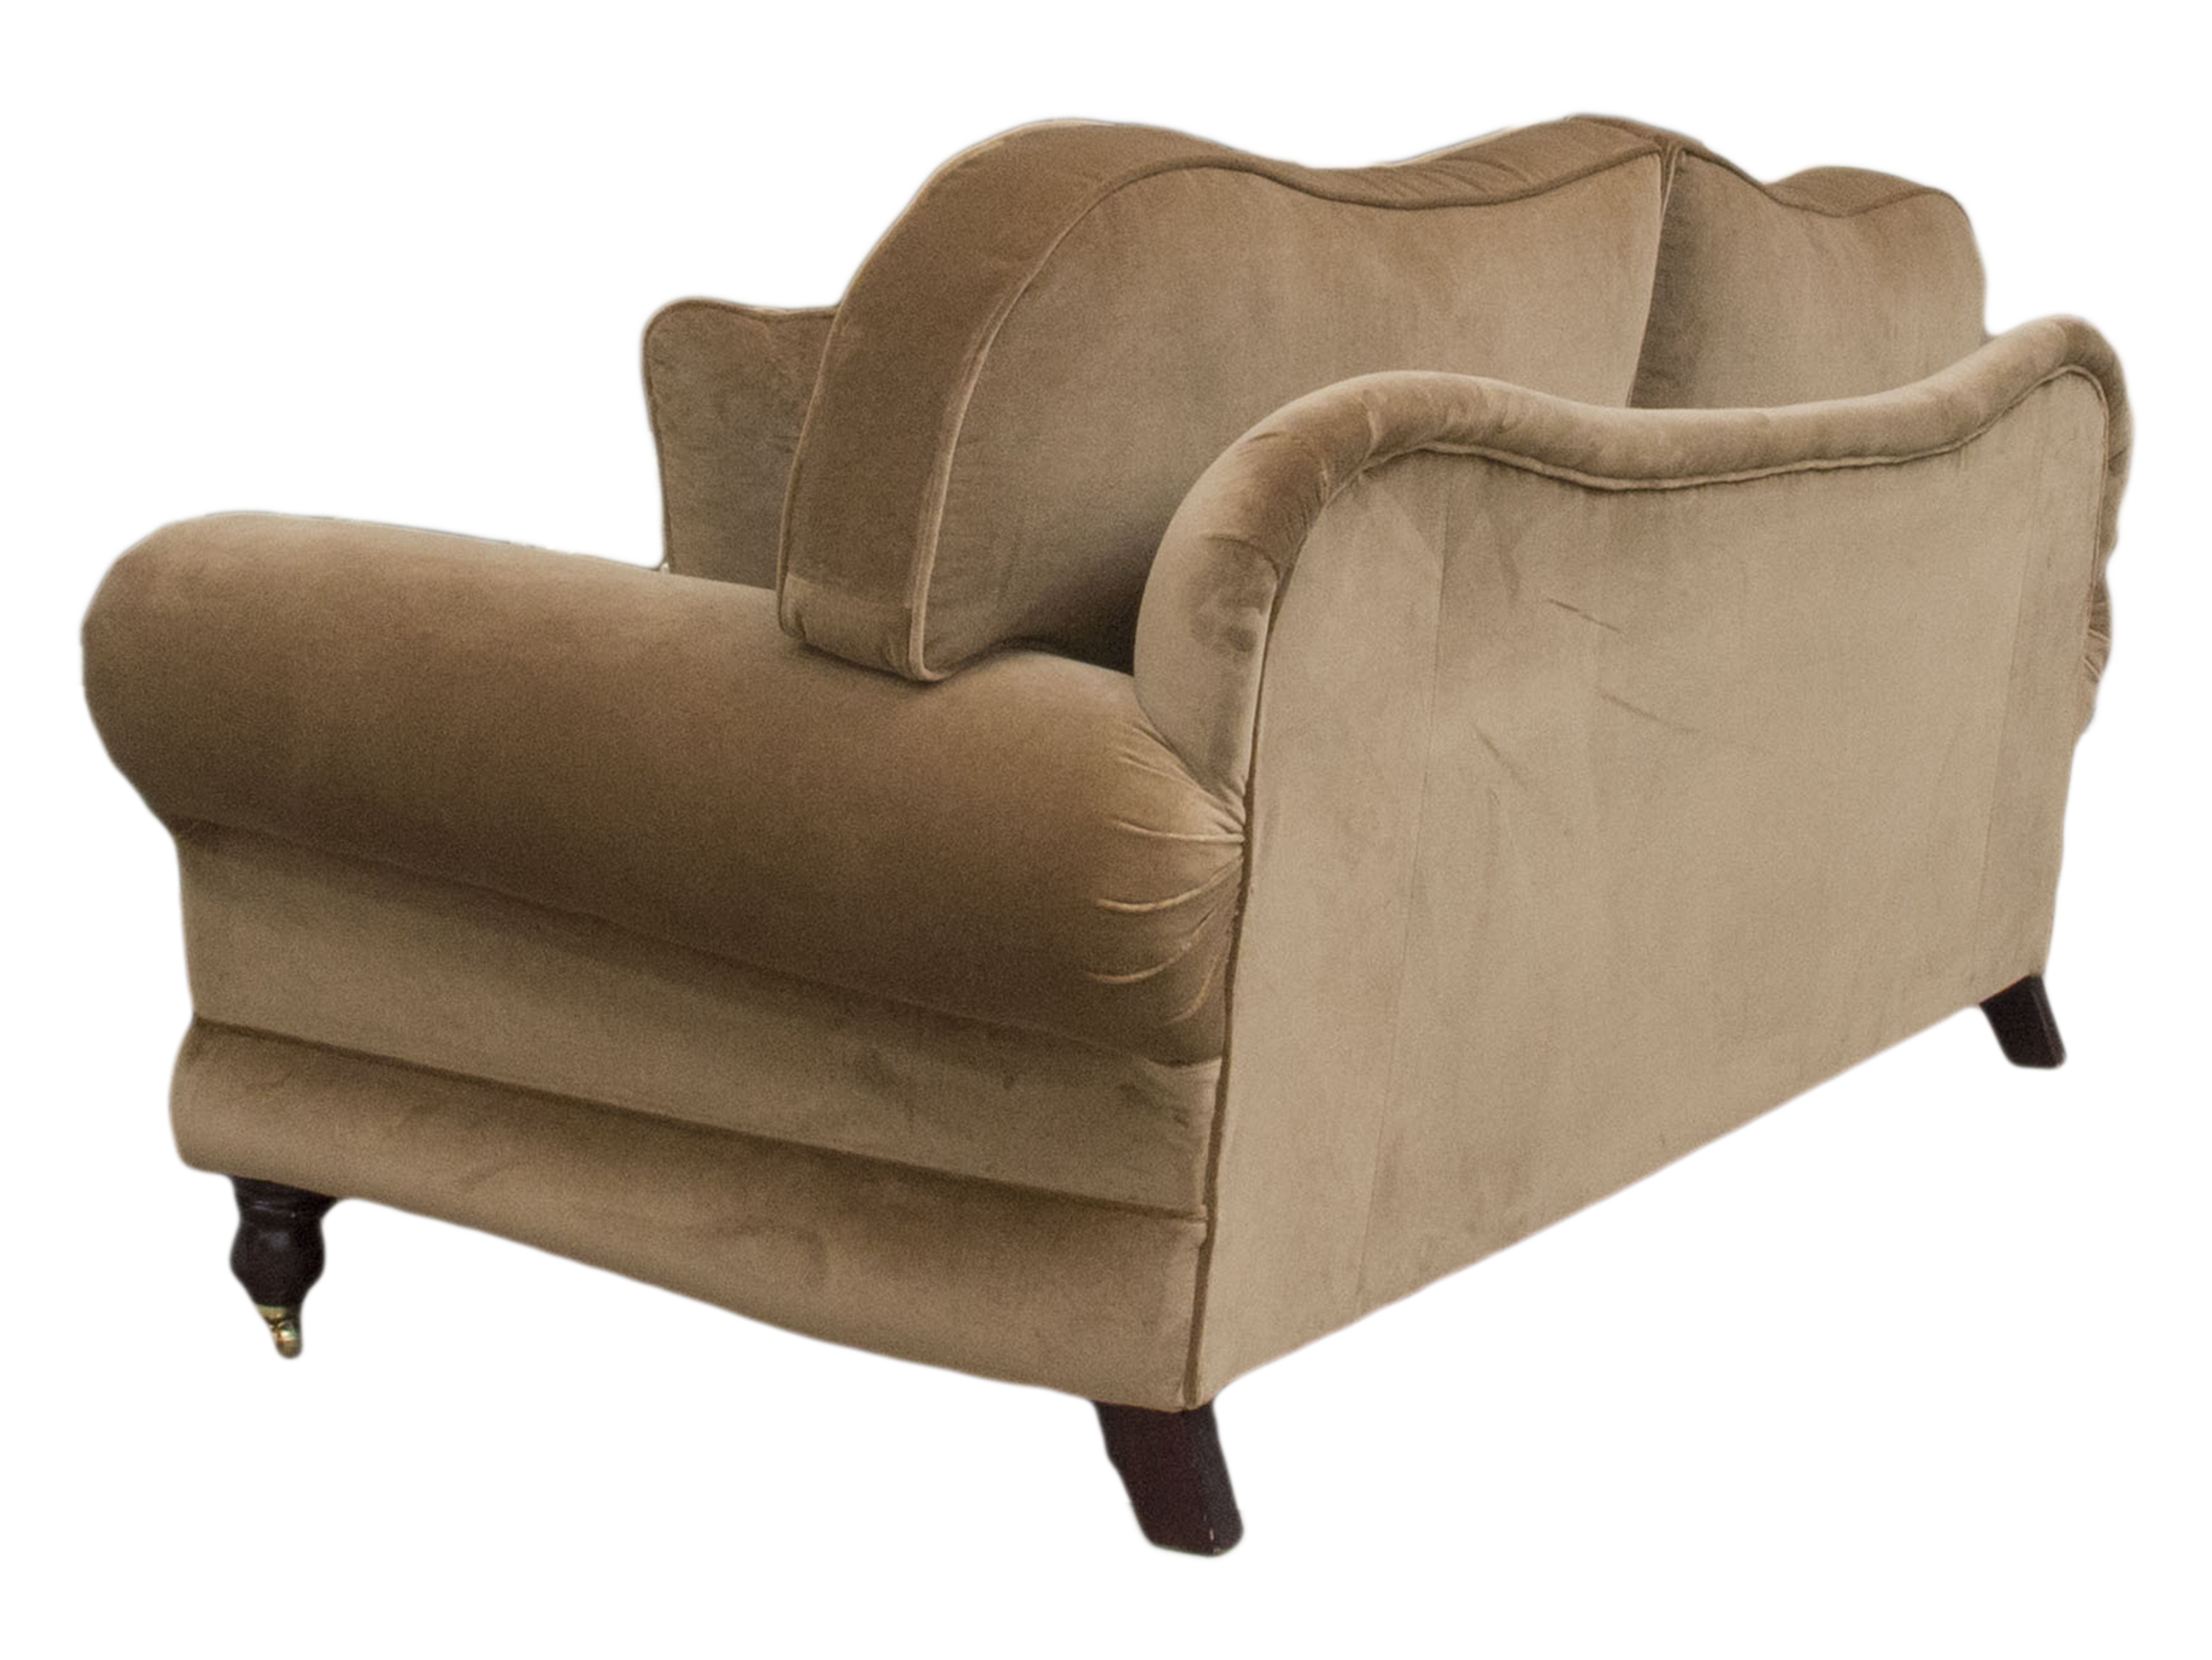 Furniture Sofa Suite Recovery Re upholstery Finline Furniture